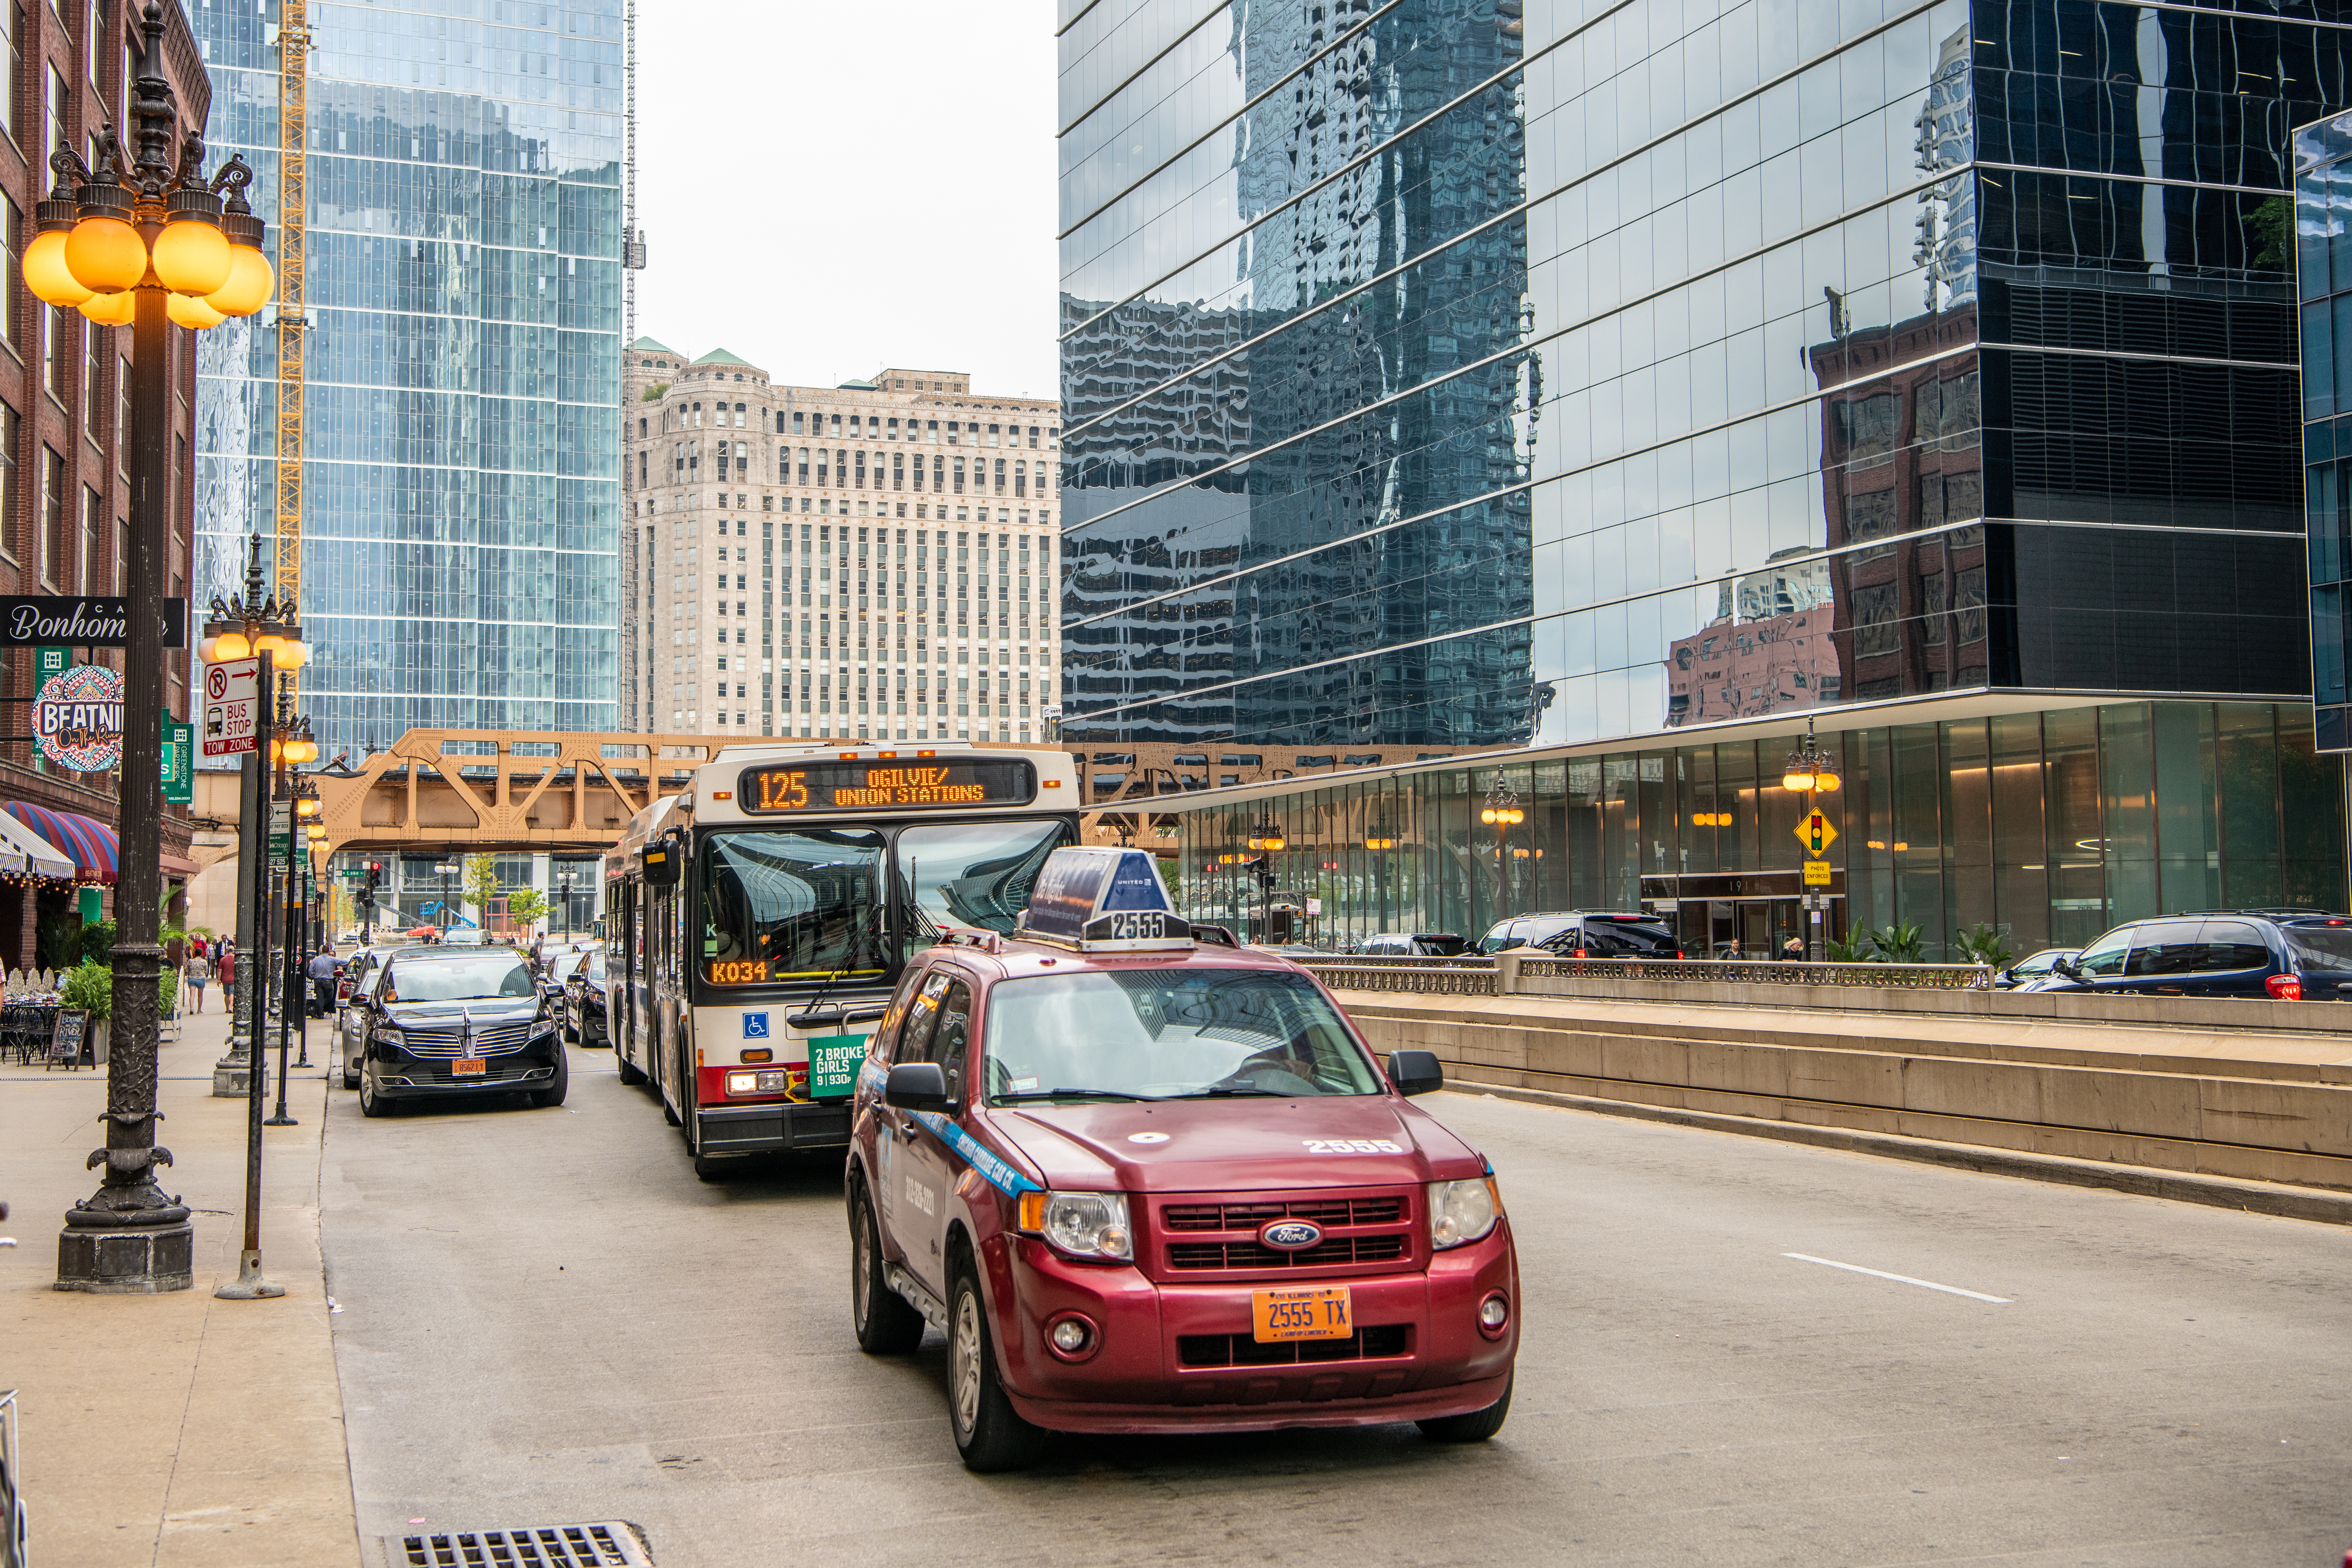 A bus and a car on a downtown street in Chicago.